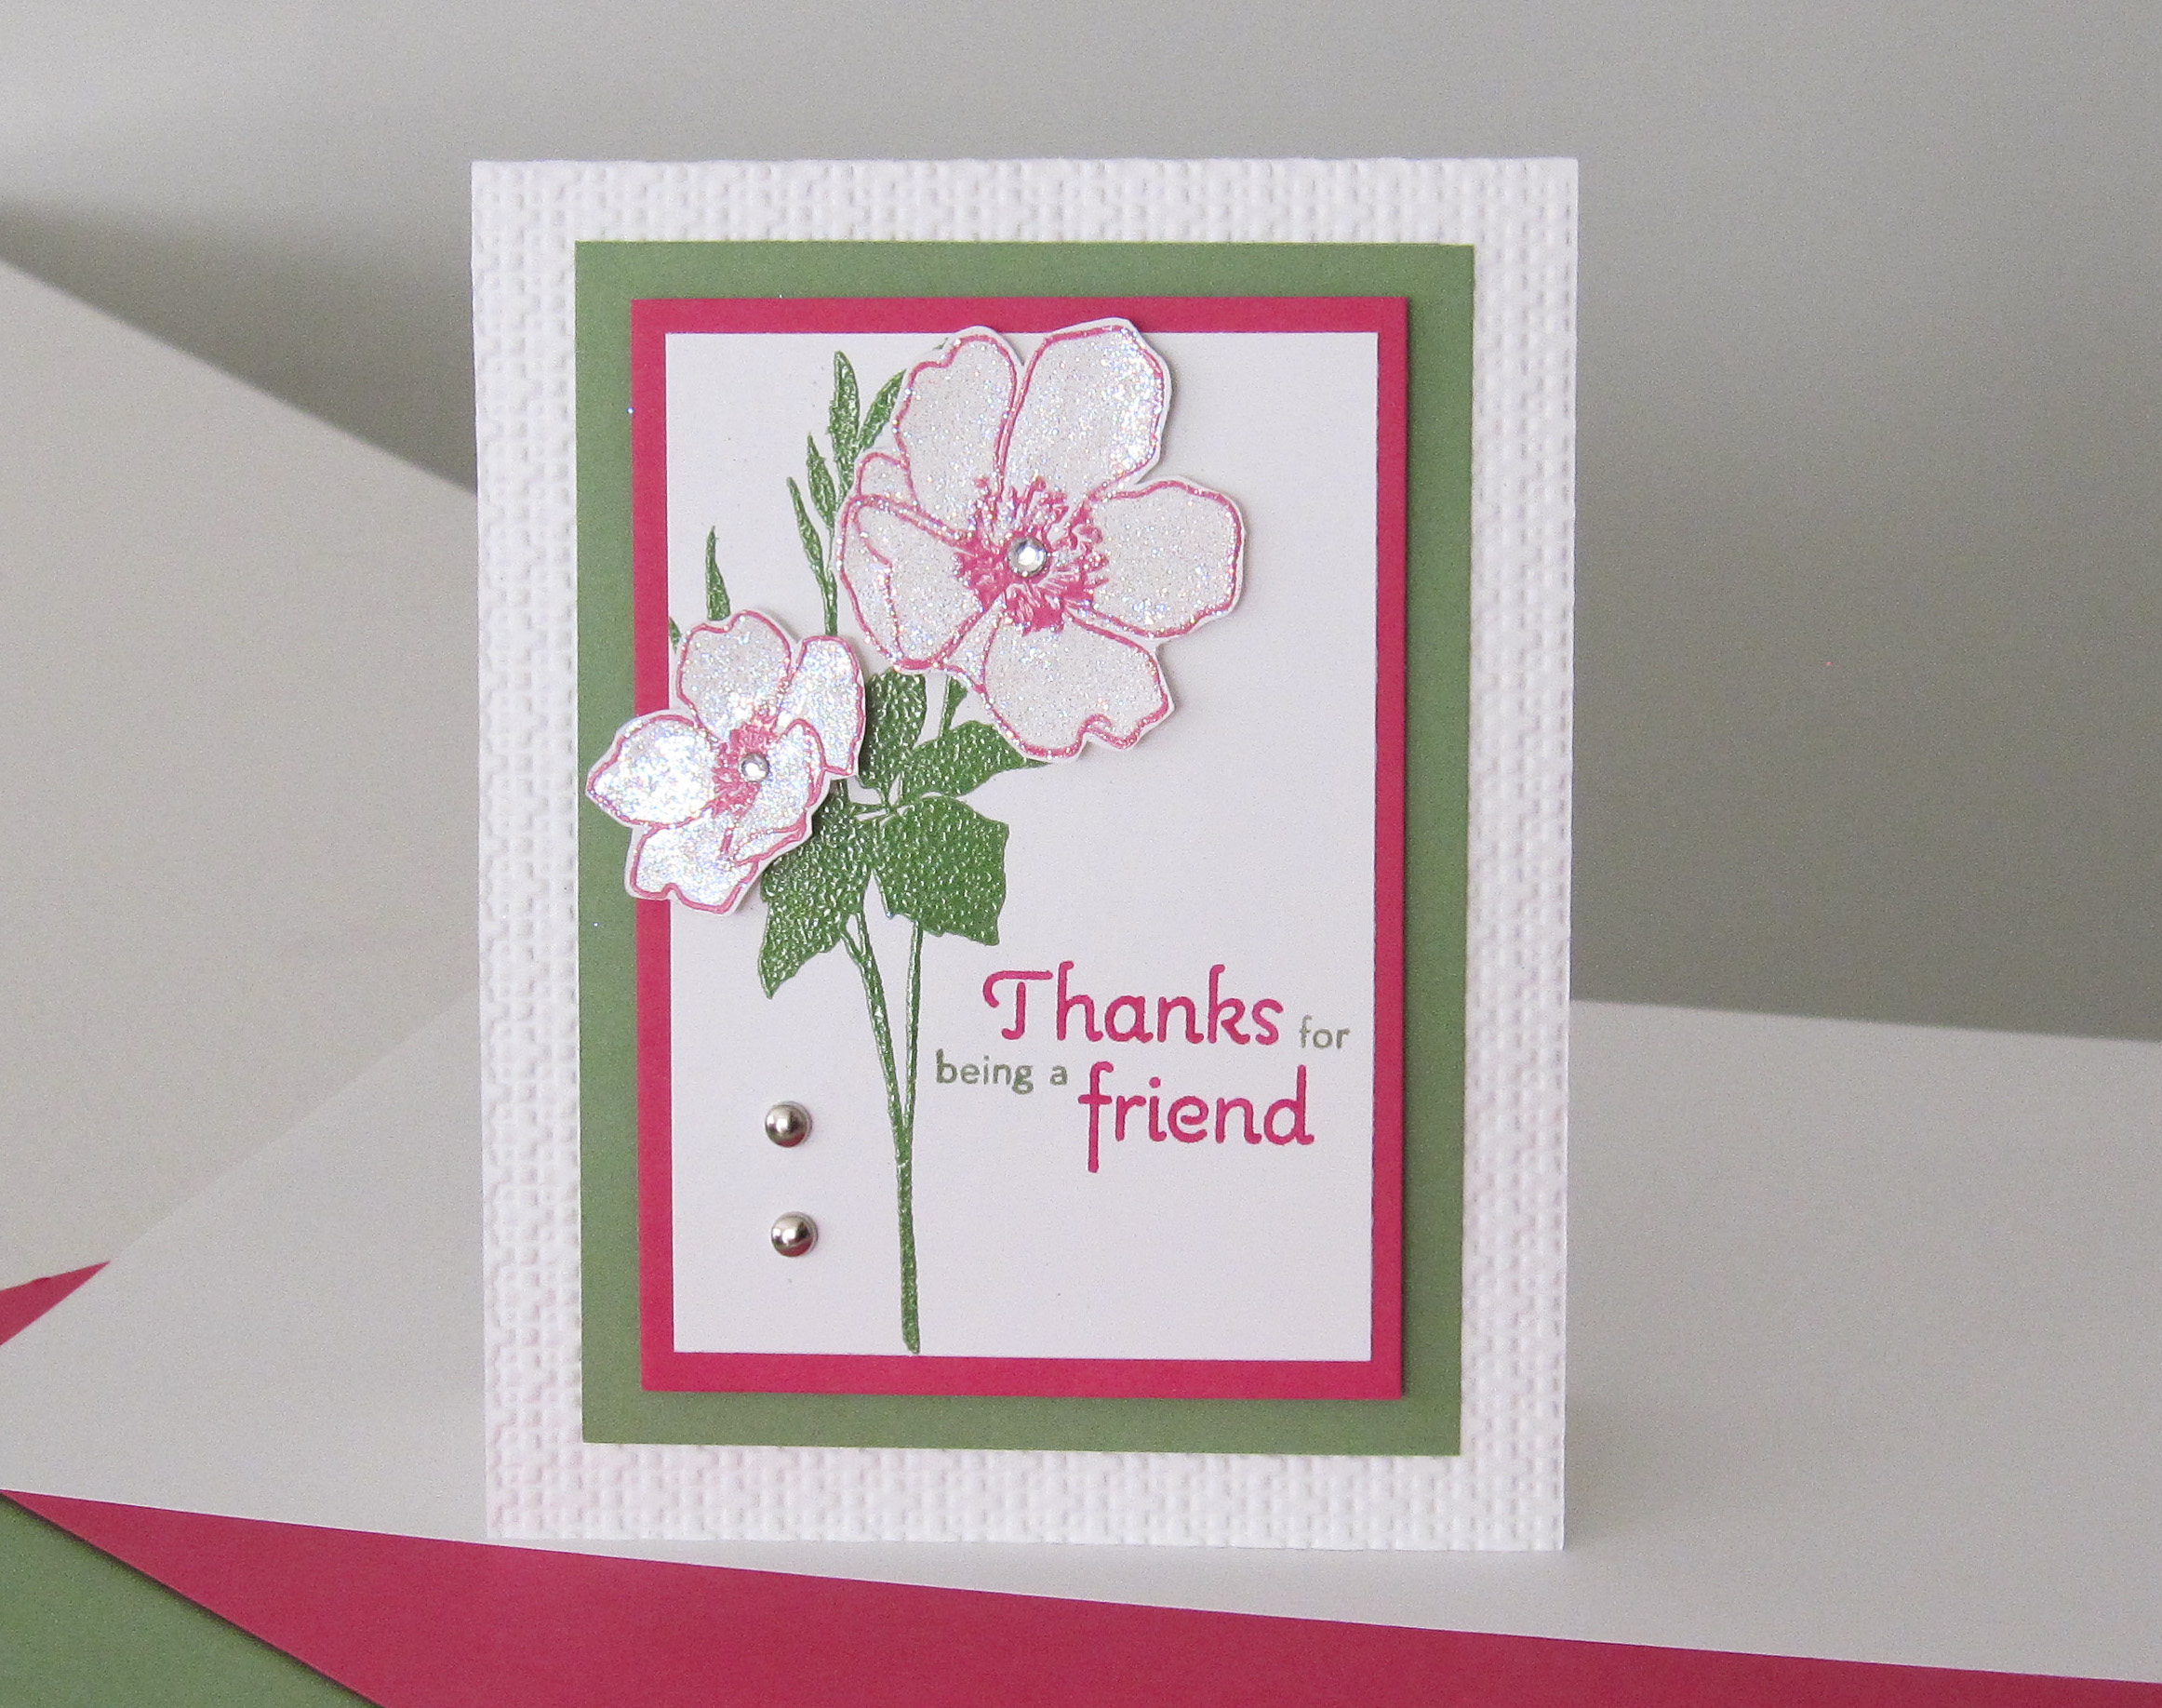 Brandyscards Com Shares A Card Designed W Fabulous